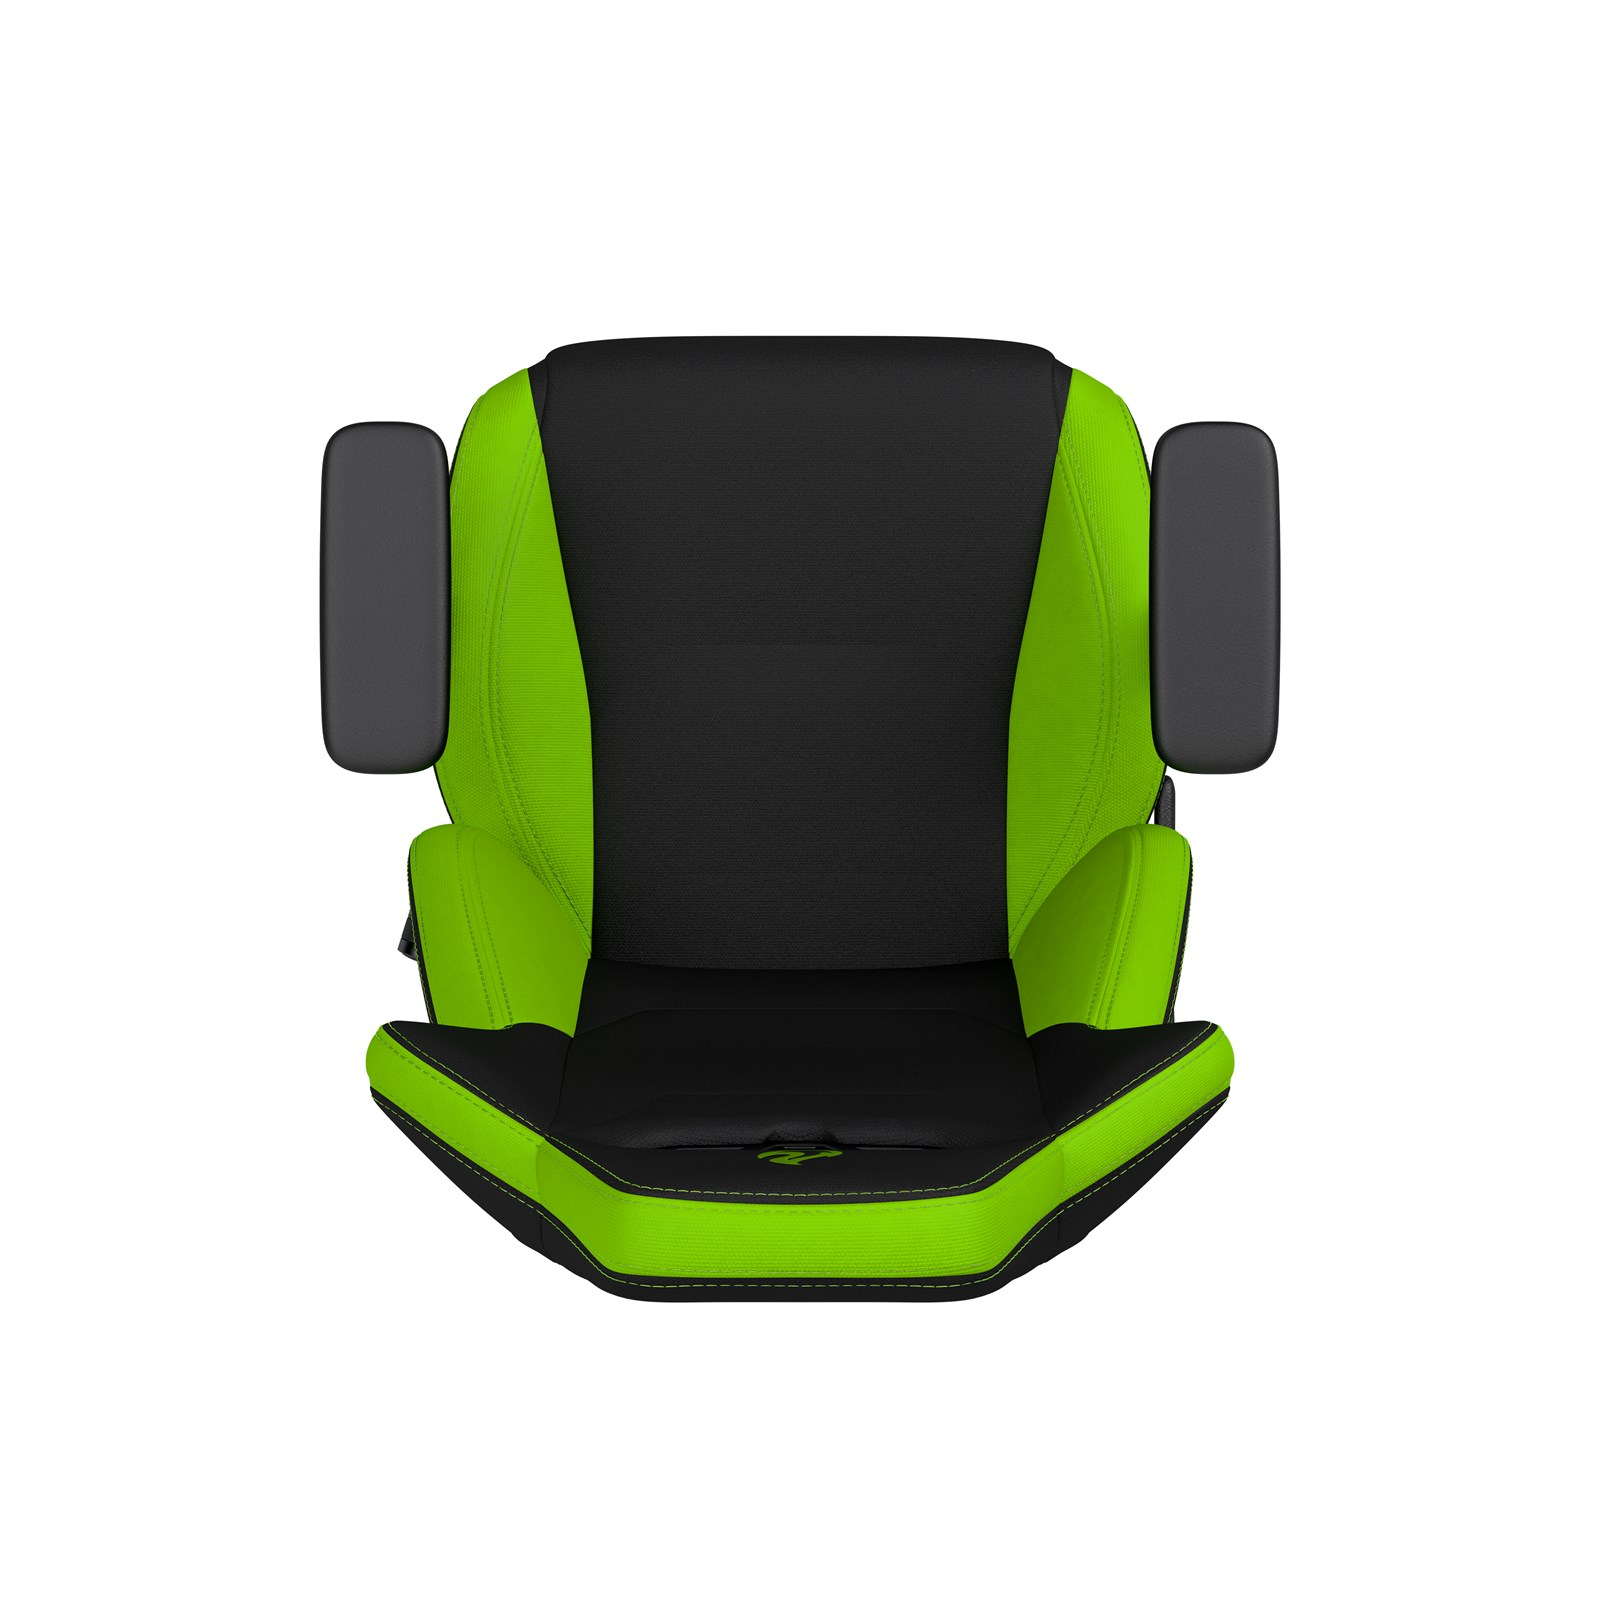 Superb Nitro Concepts S300 Fabric Gaming Chair Atomic Green Nc Ibusinesslaw Wood Chair Design Ideas Ibusinesslaworg